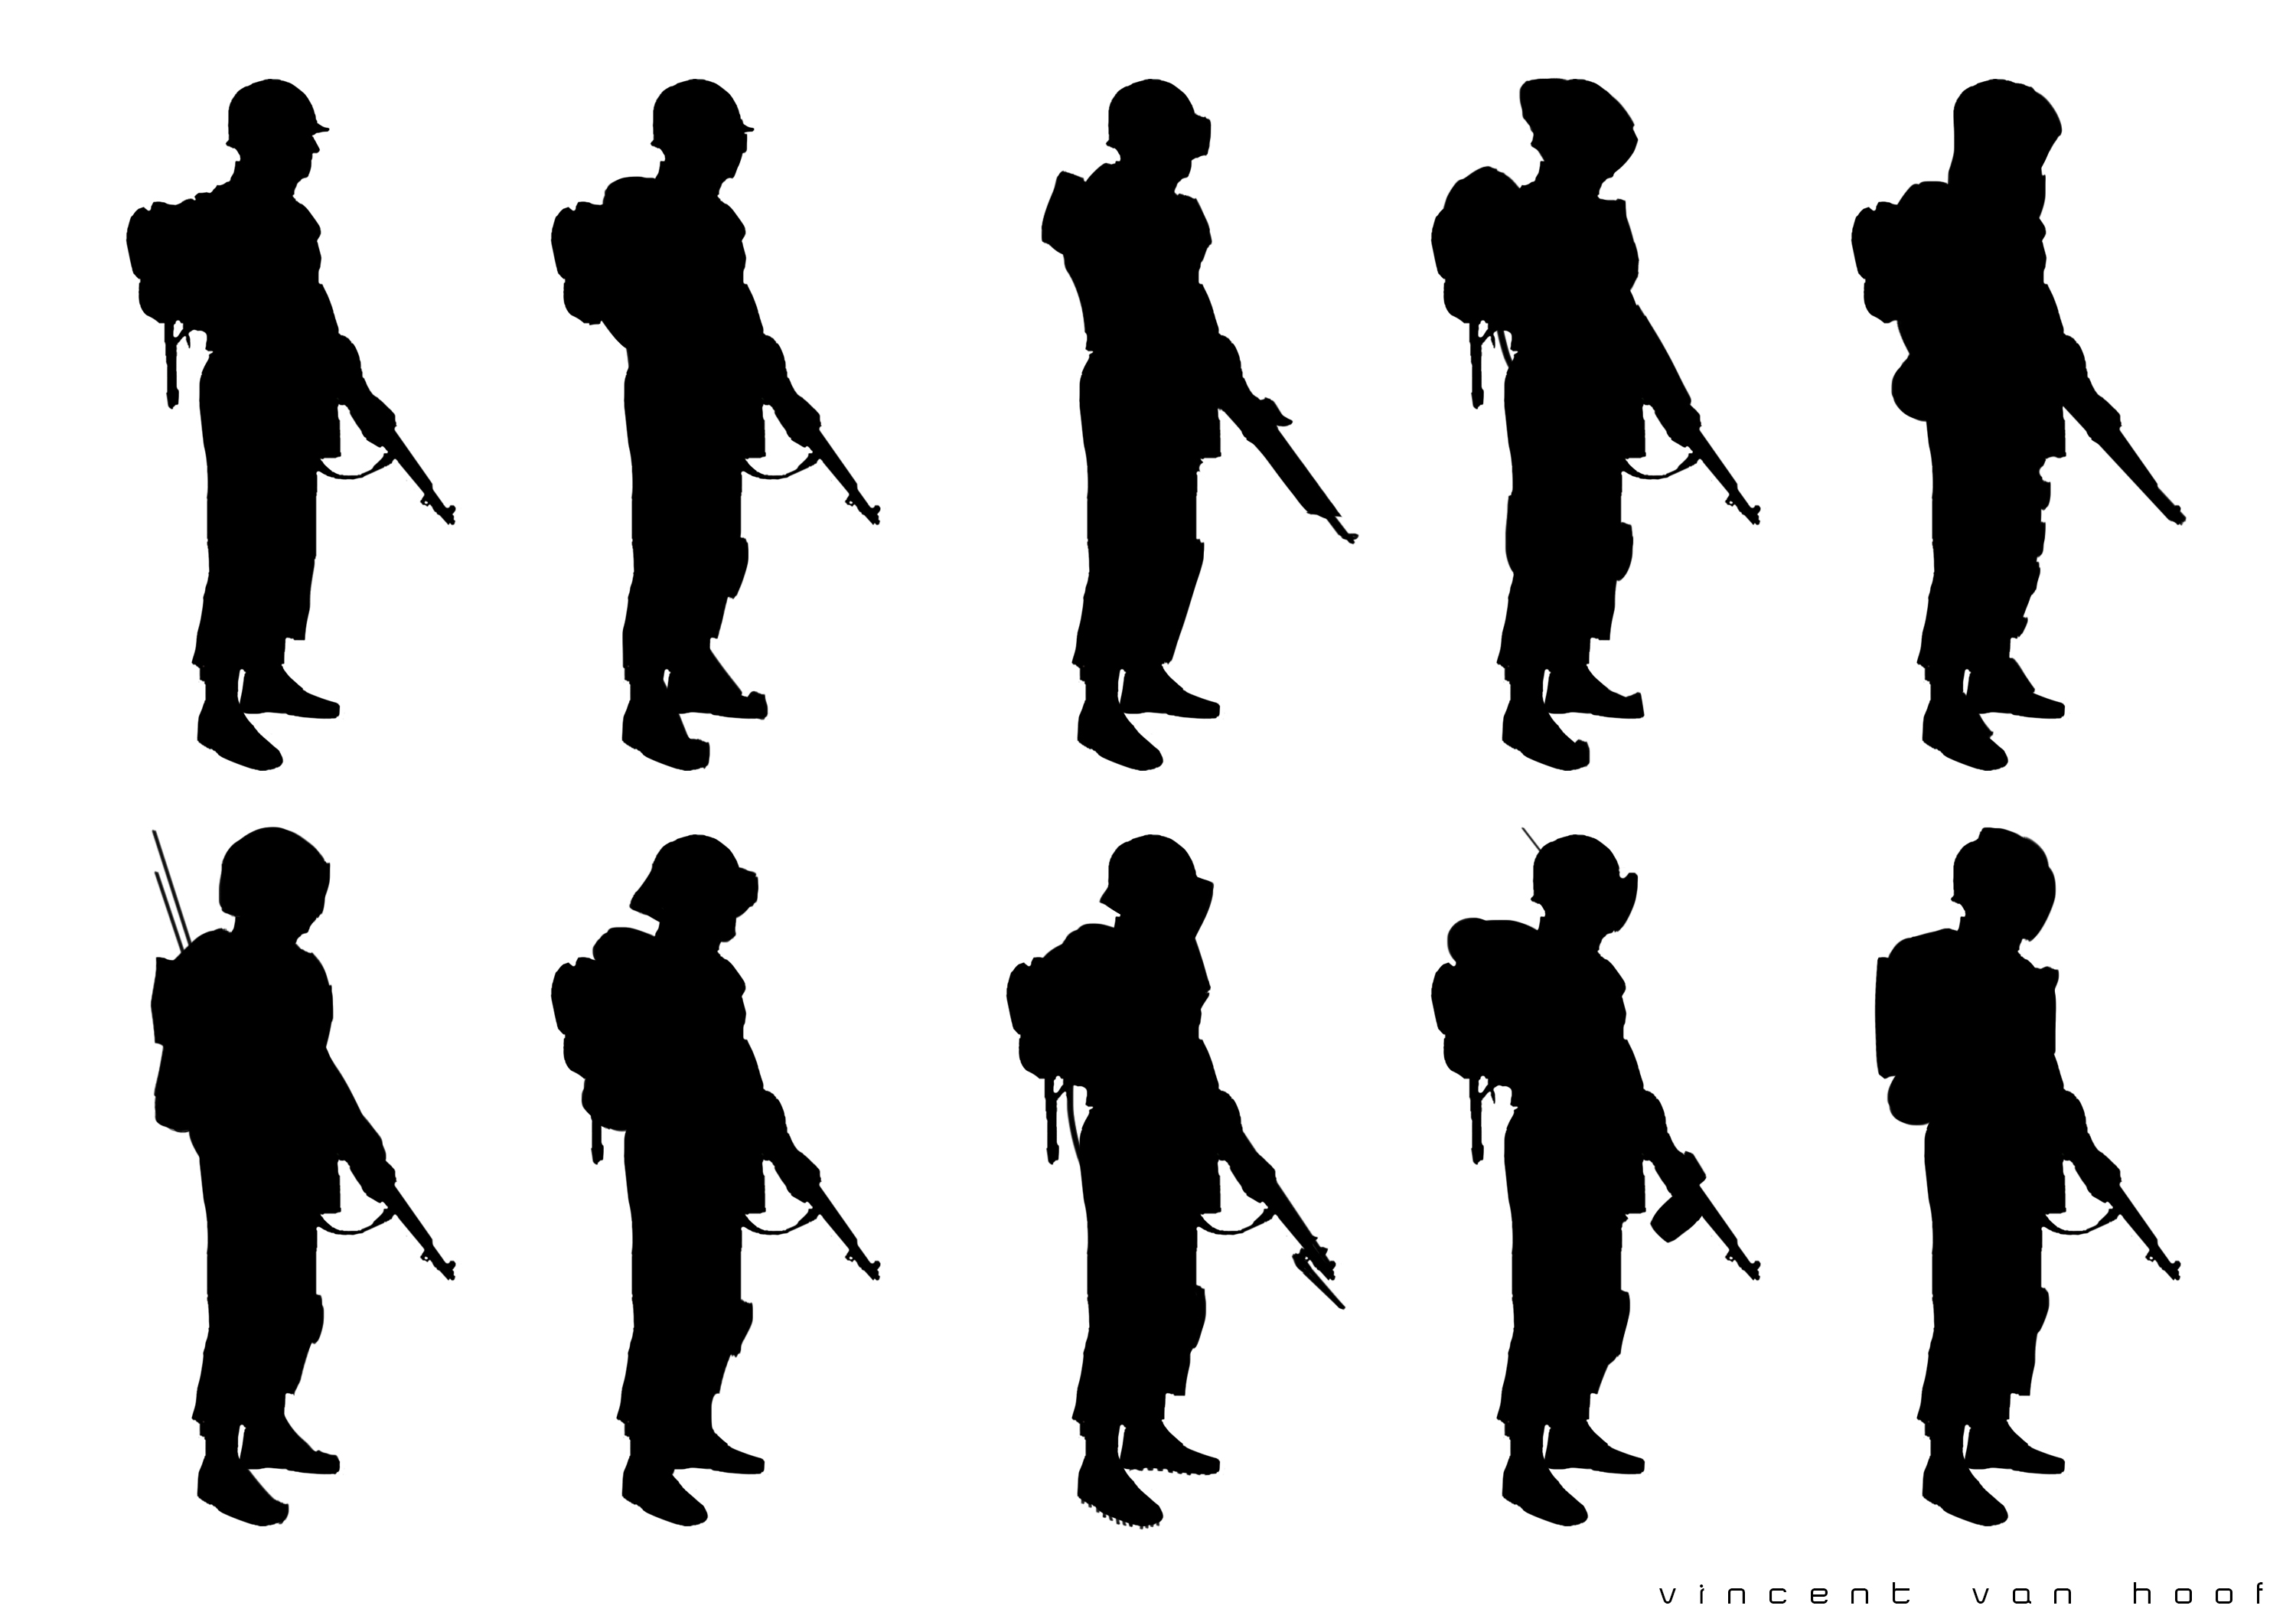 Infantry Silhouettes Set 1 Image